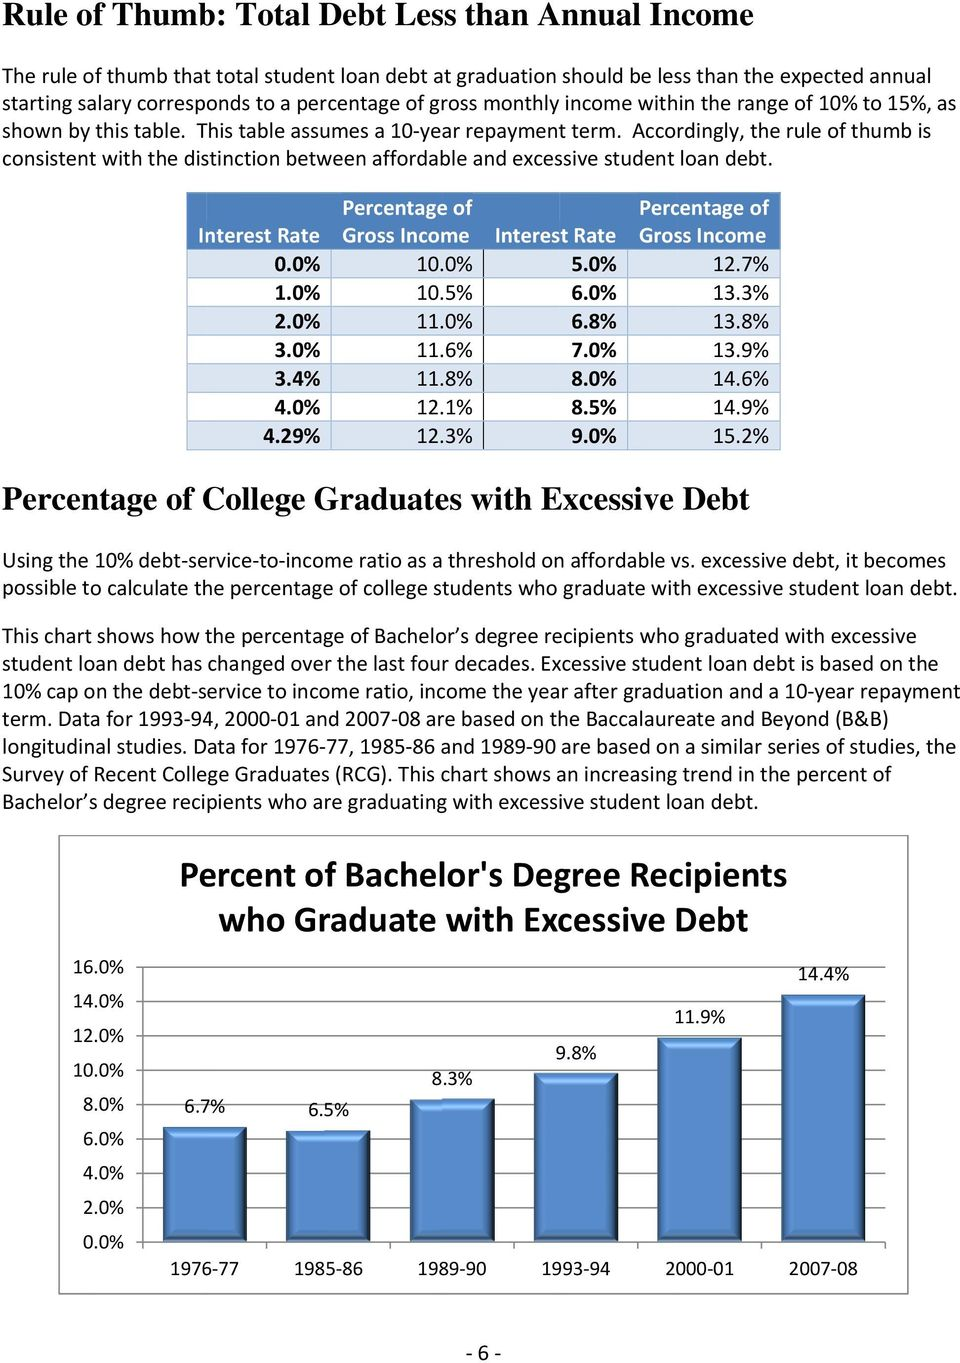 Accordingly, the rule of thumb is consistent with the distinction between affordable and excessive student loan debt. Interest Rate 1.0% 2.0% 3.0% 3.4% 4.0% 4.29% Percentagee of Gross Income 10..0% 10.